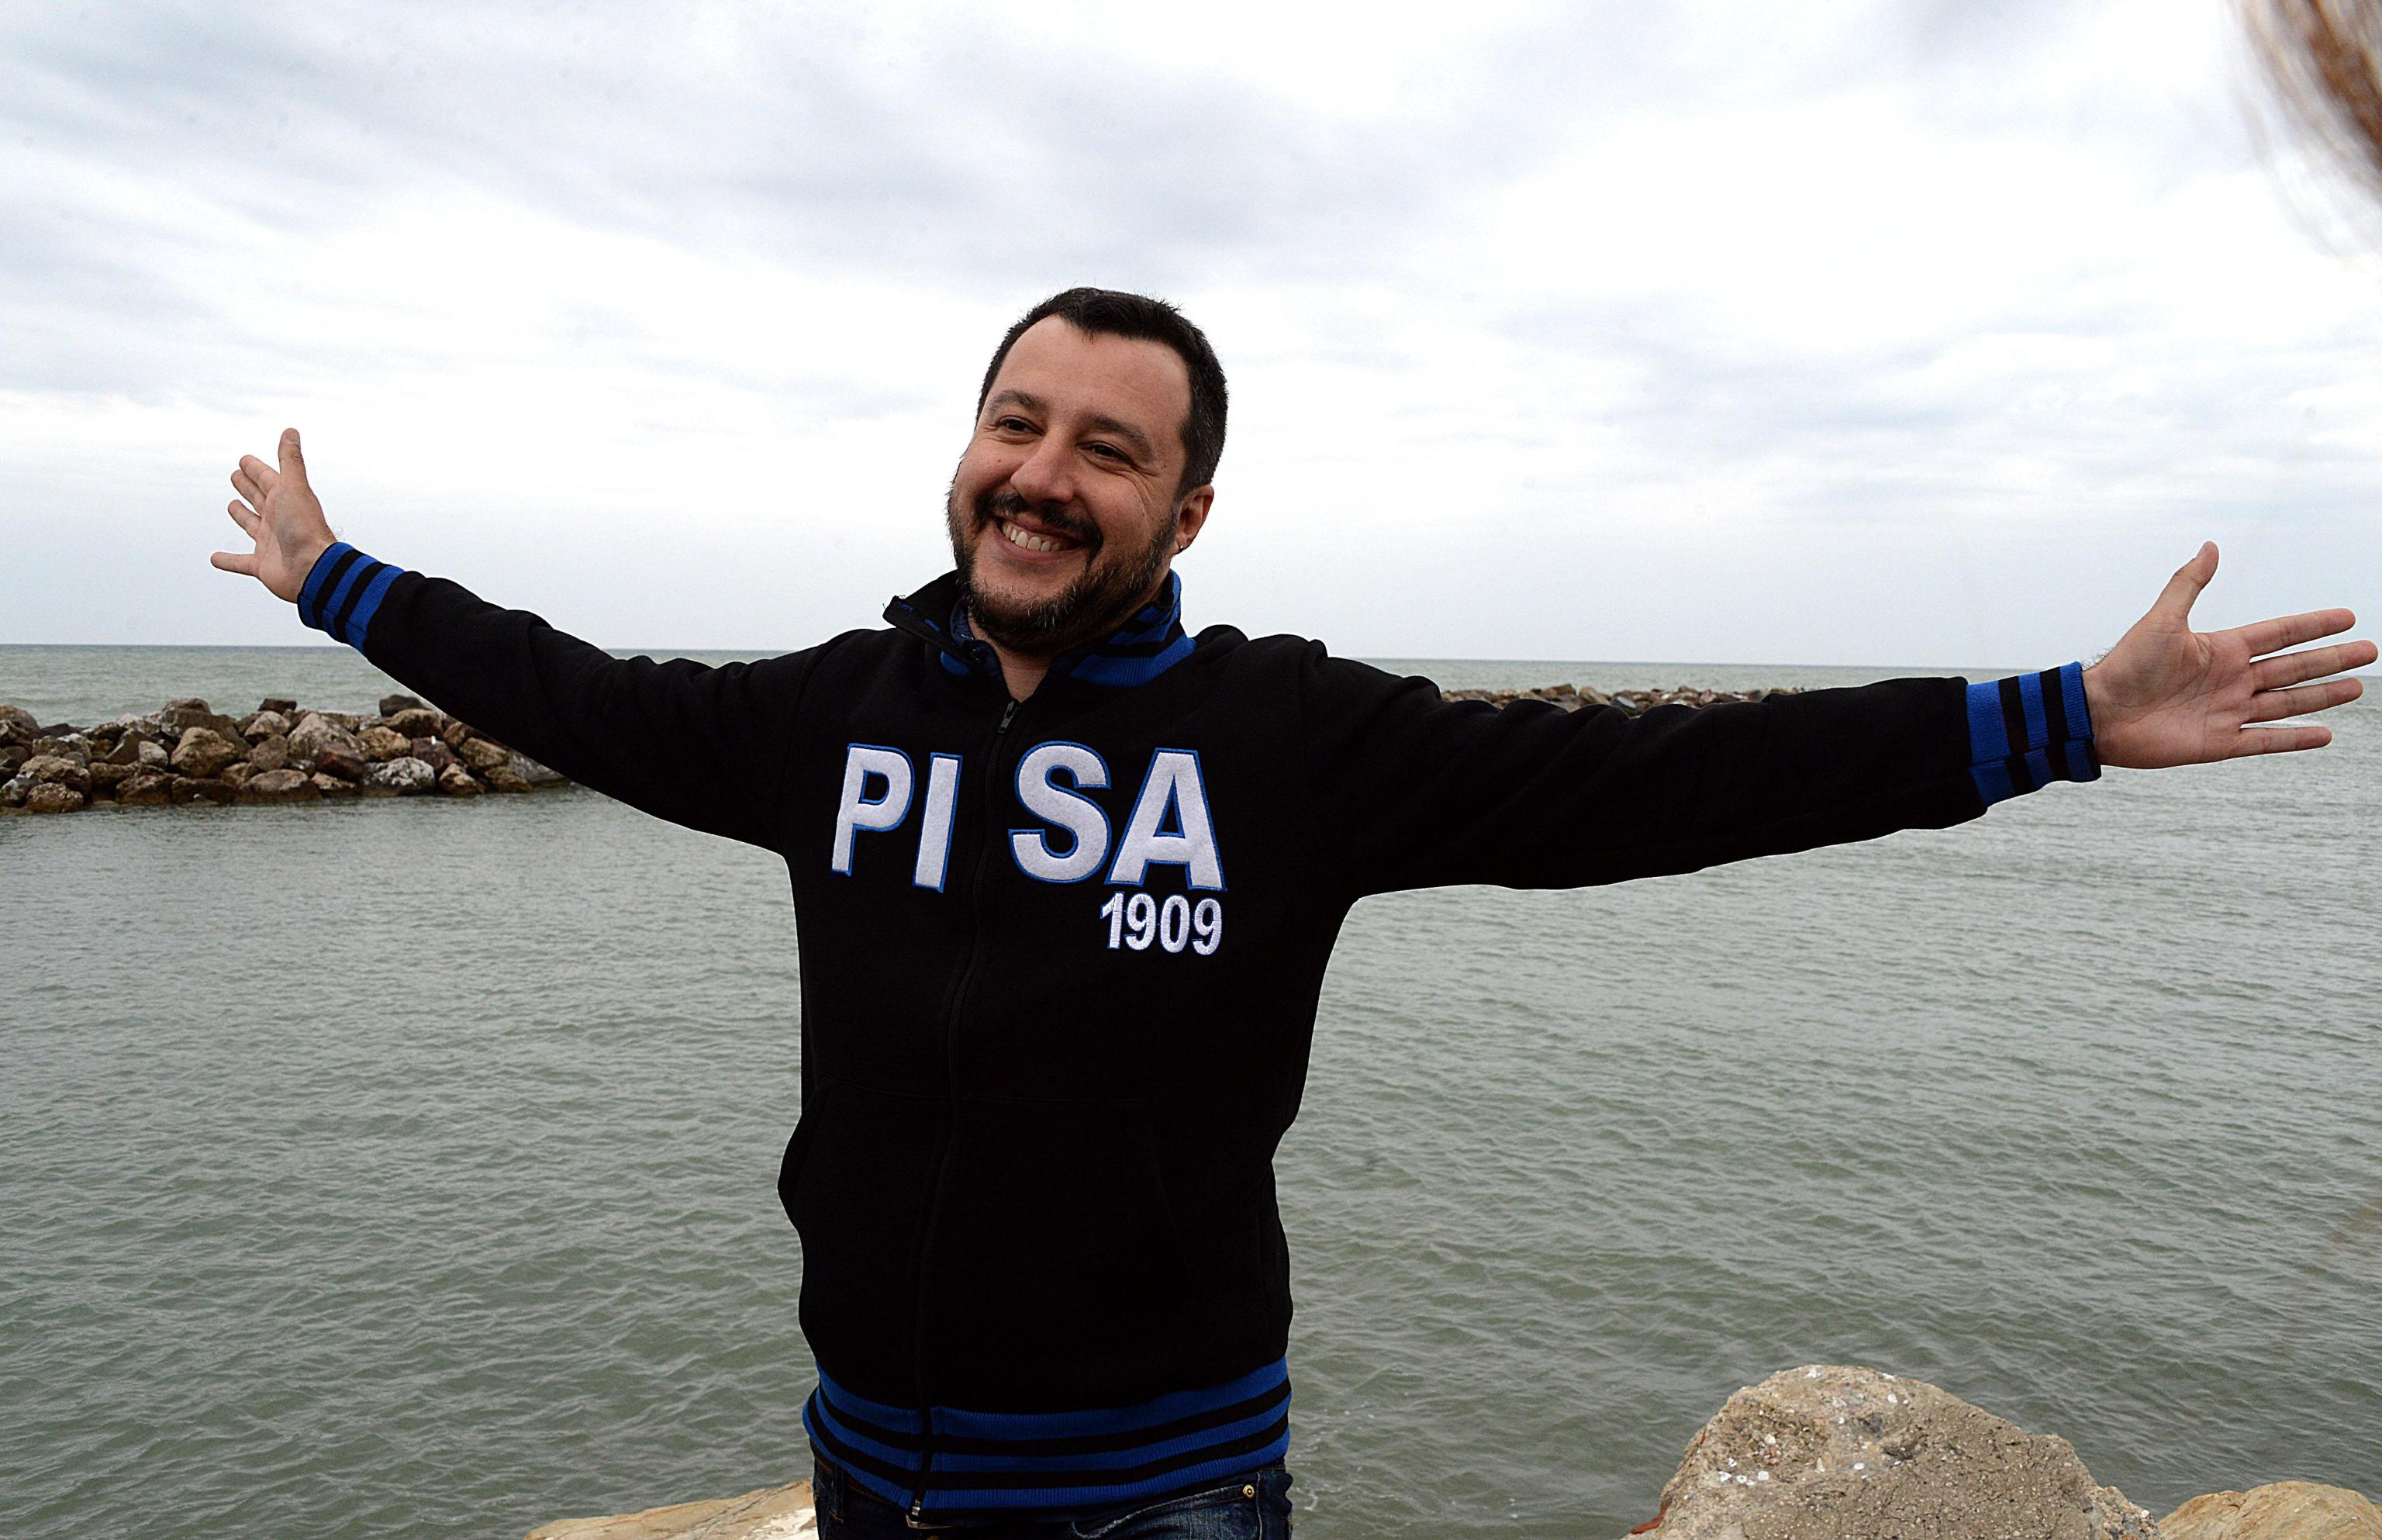 salvini - photo #10